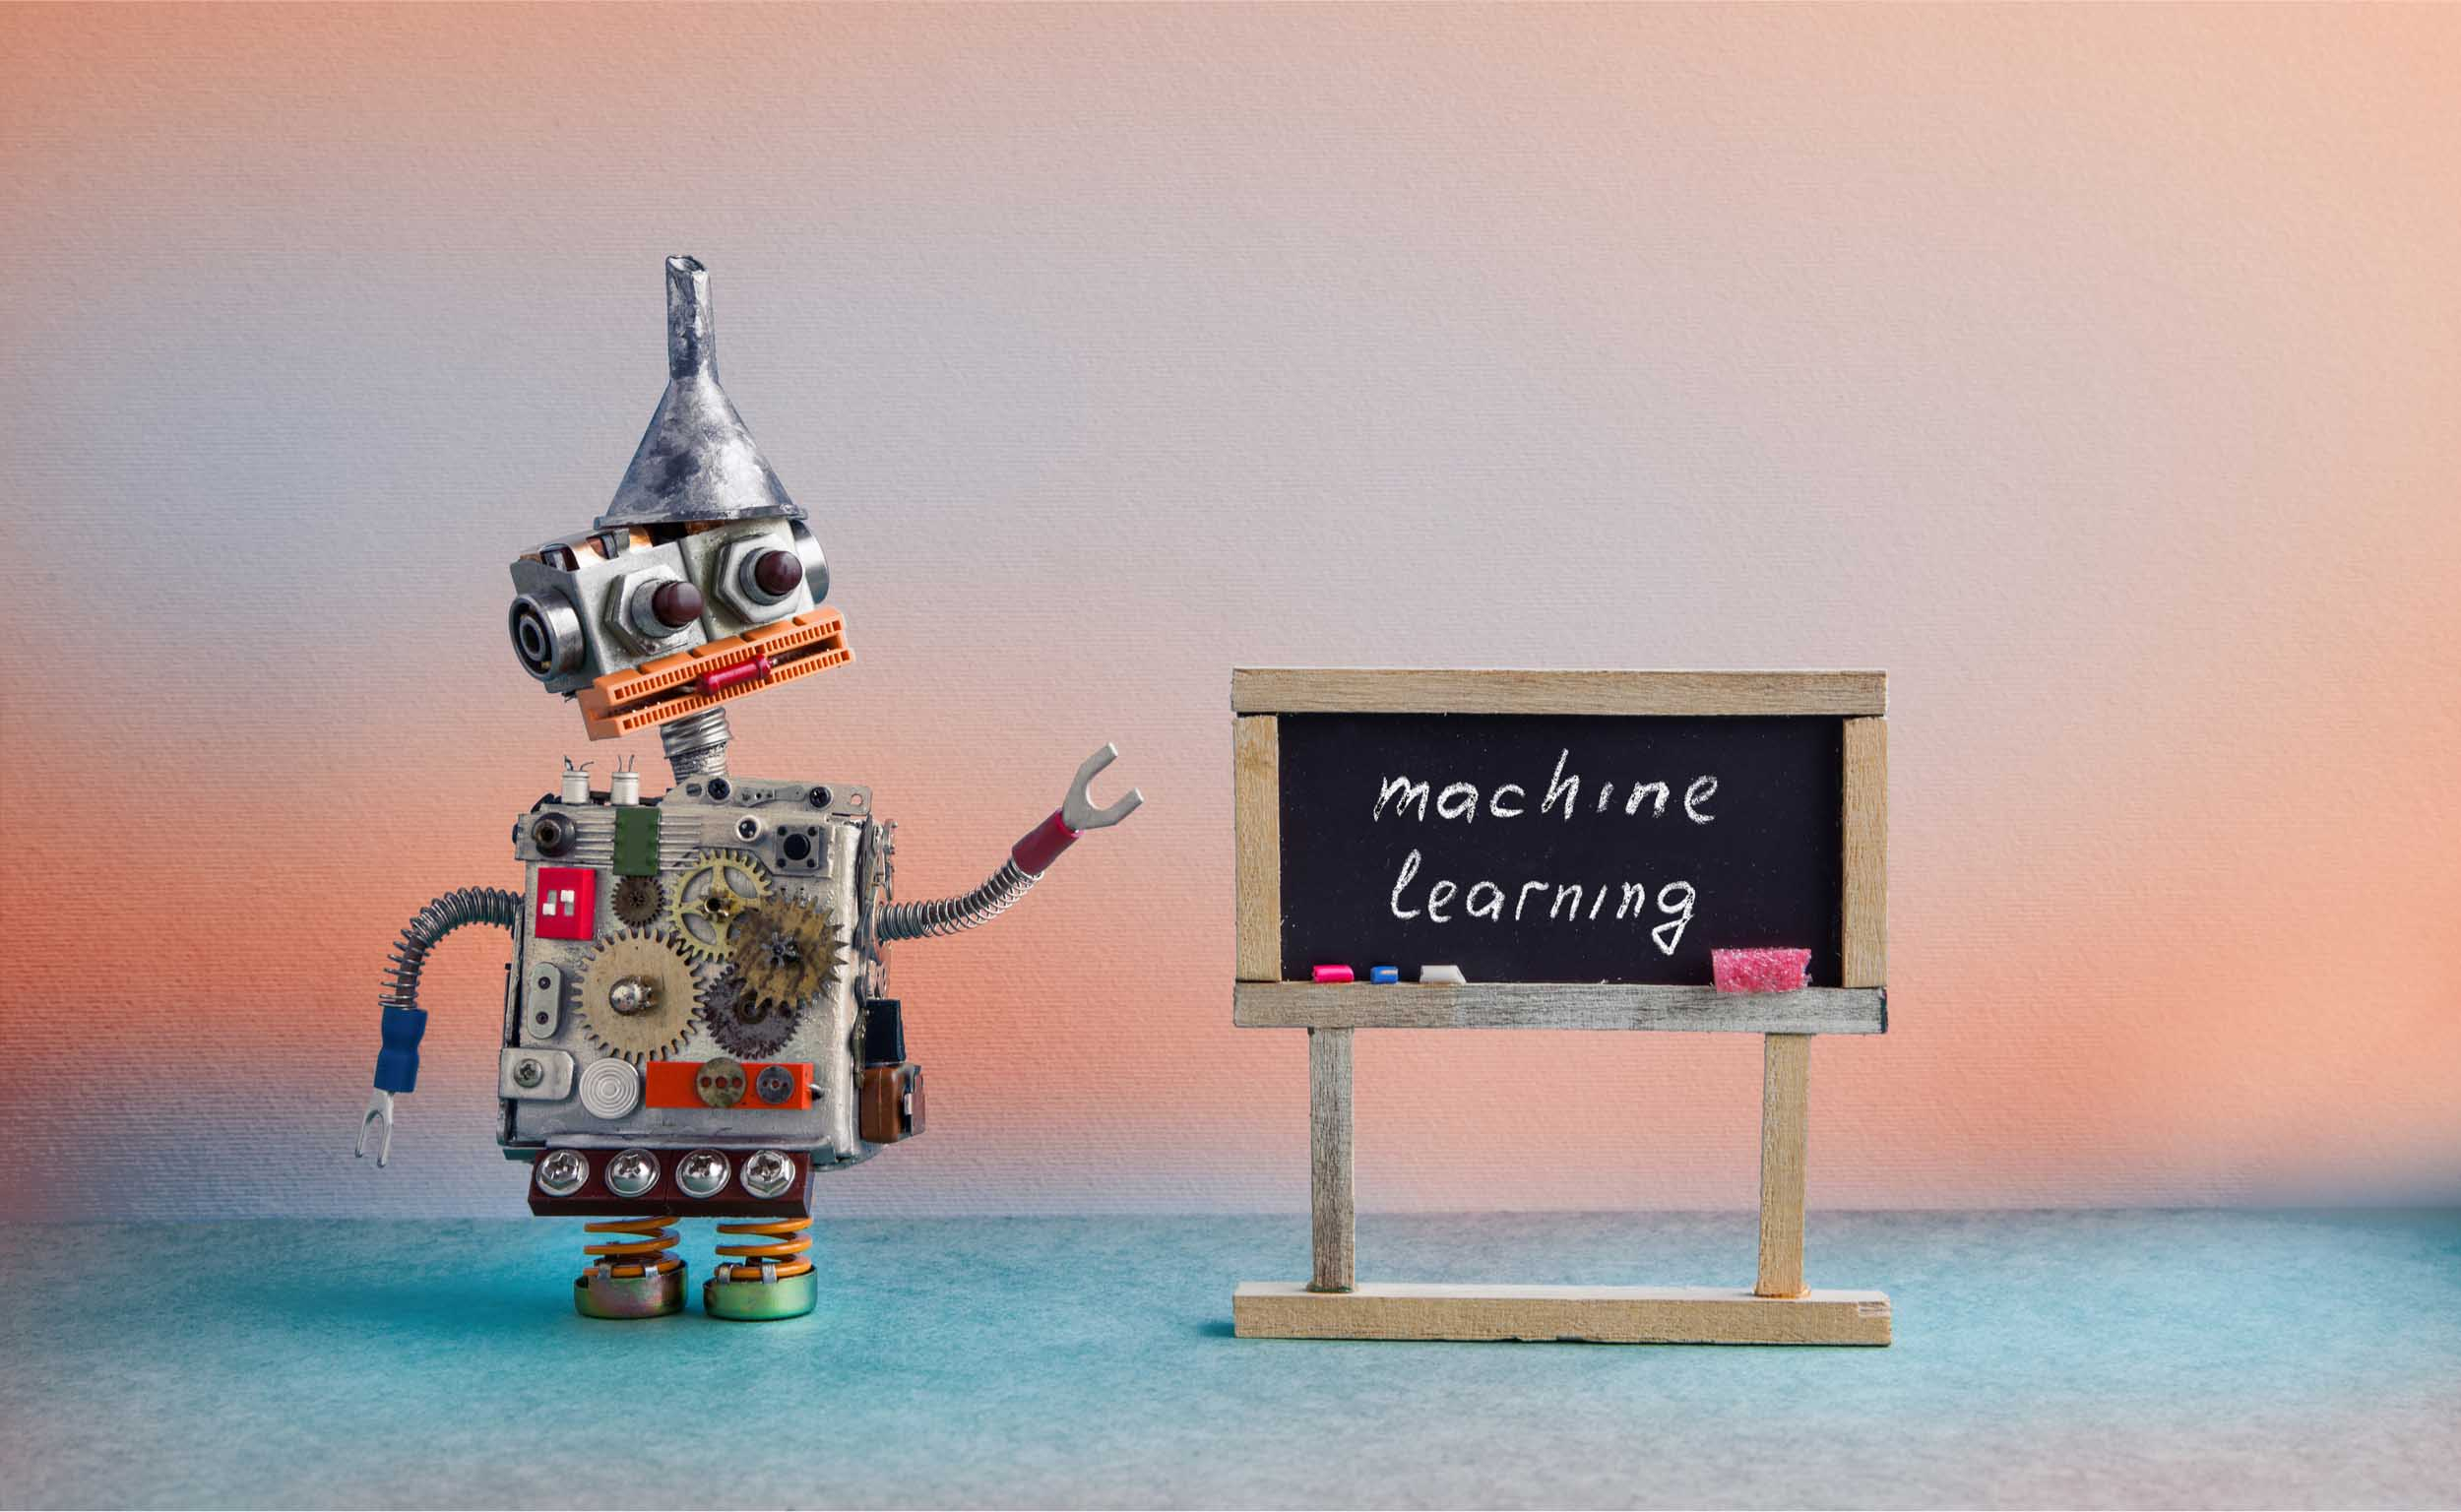 12 Steps to Reproducible Machine Learning in Production